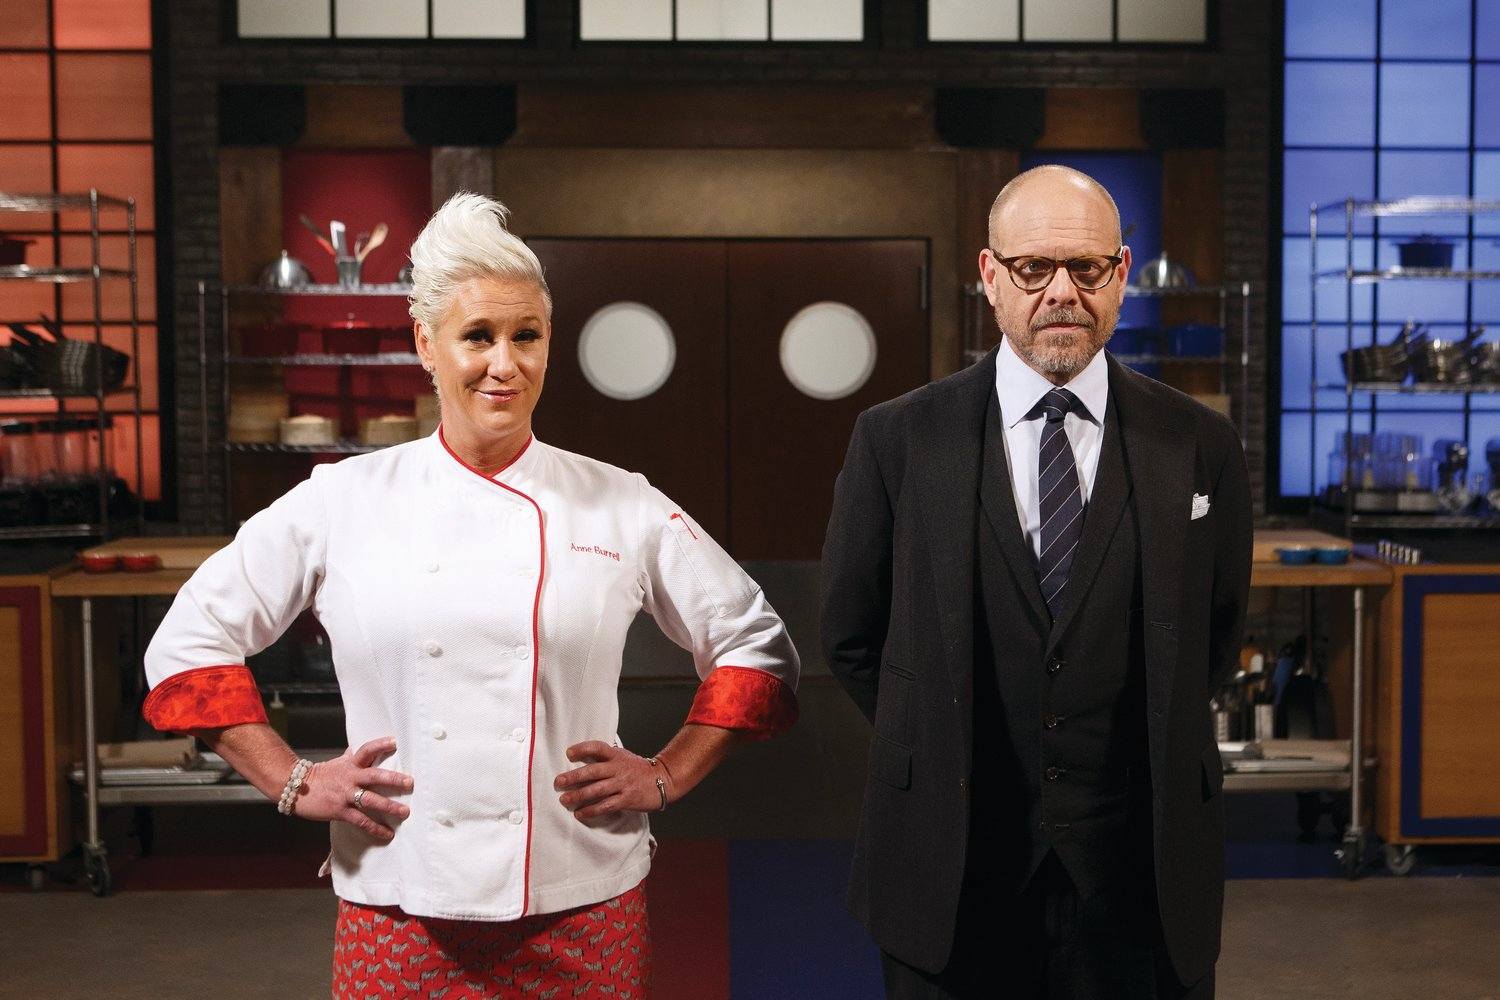 Chef hosts Anne Burrell and Alton Brown pose together, as seen on Worst Cooks in America, Season 18.